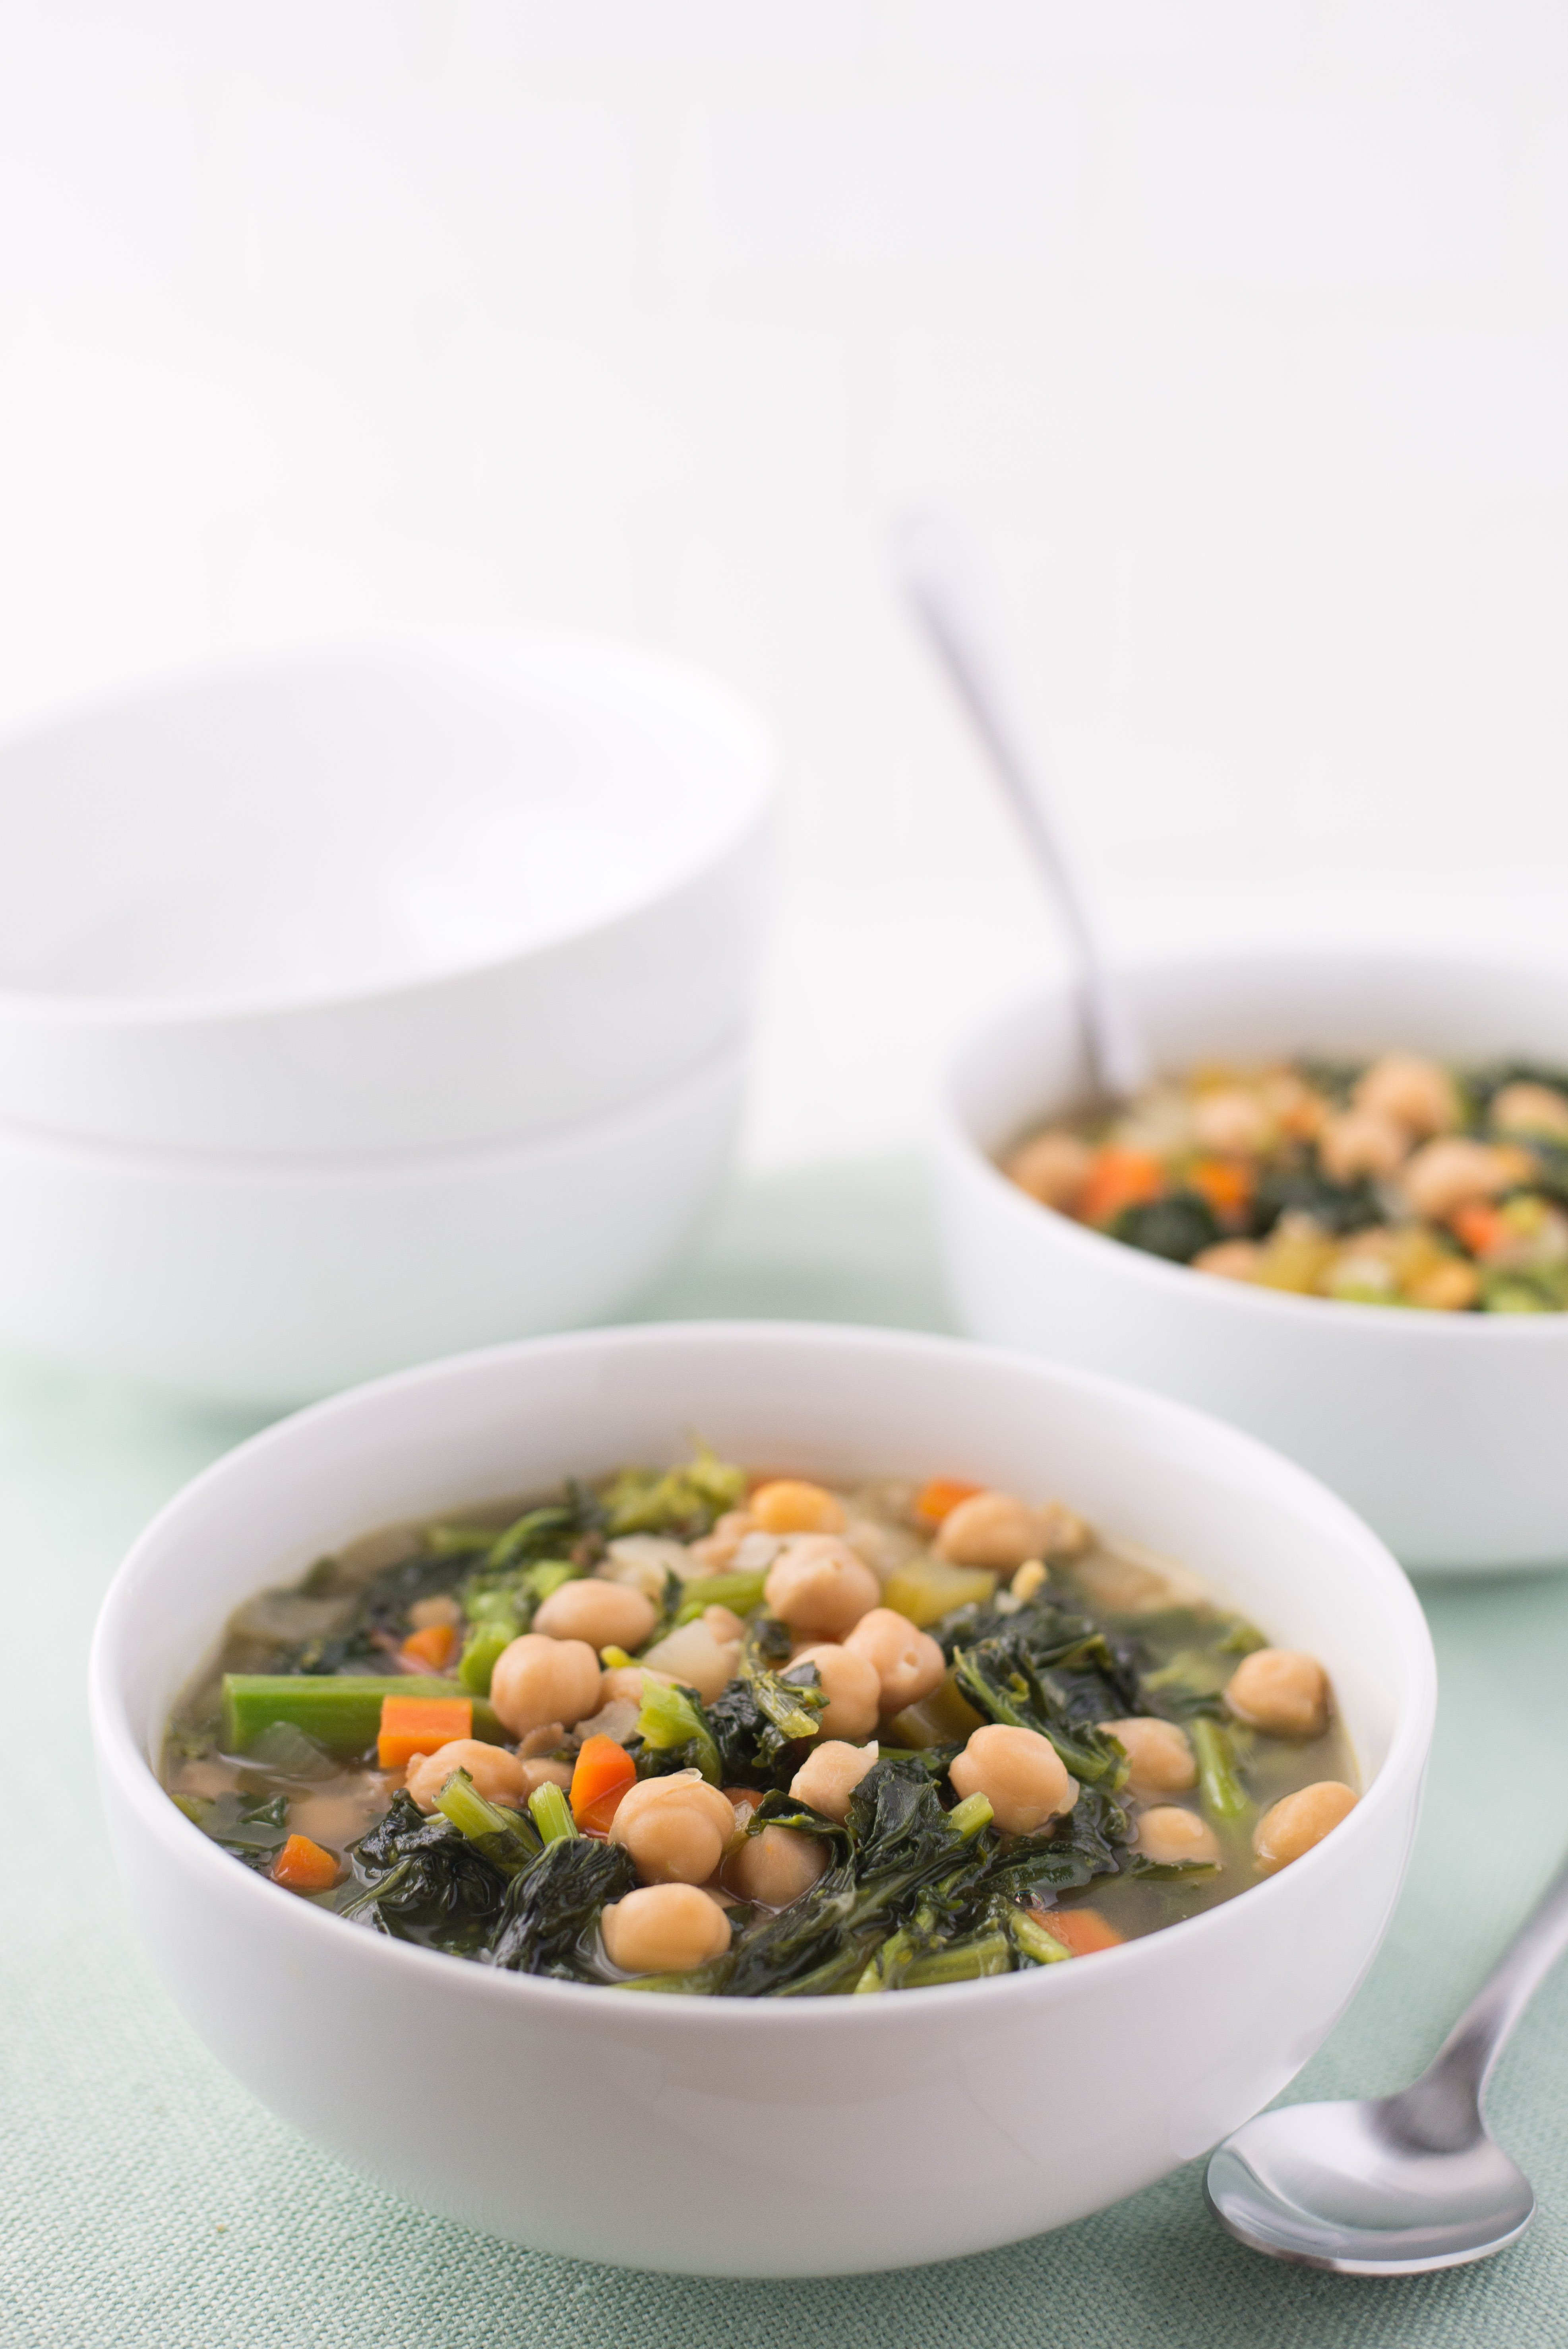 10 Chickpea Recipes for the Great Garbanzo | Kitchn